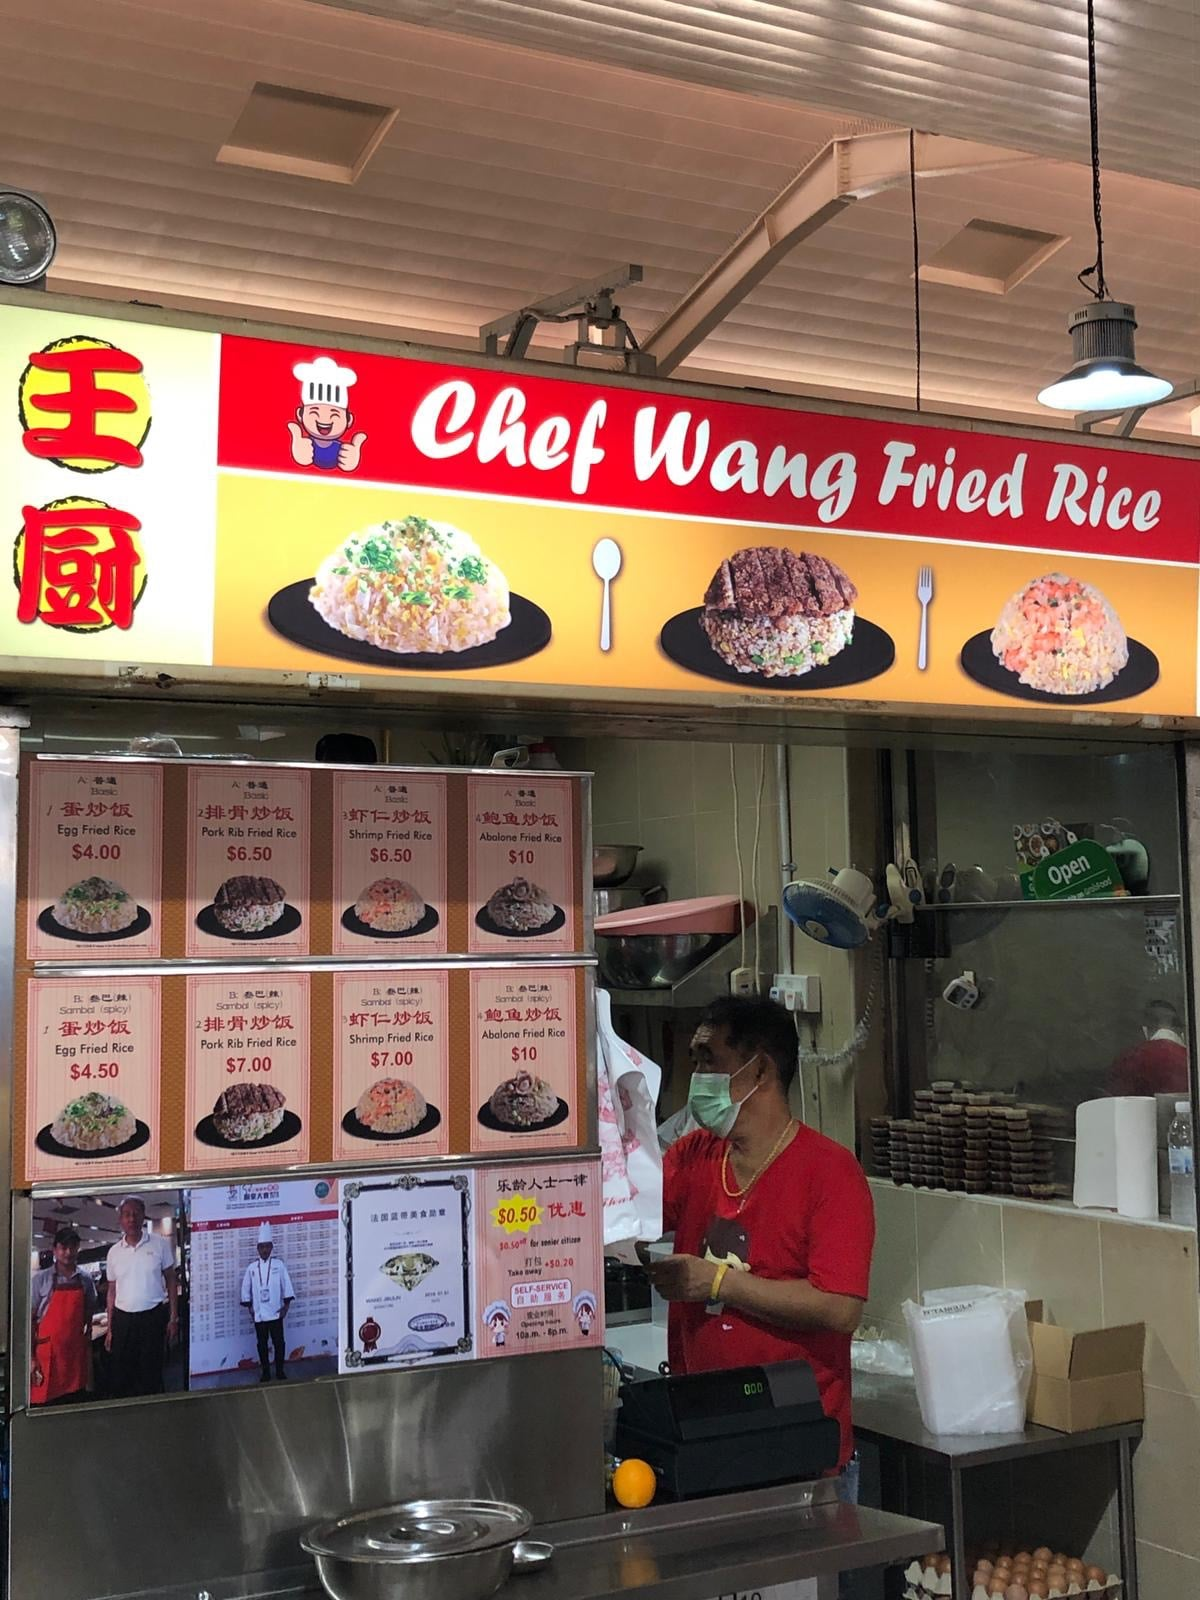 chef wang fried rice - storefront